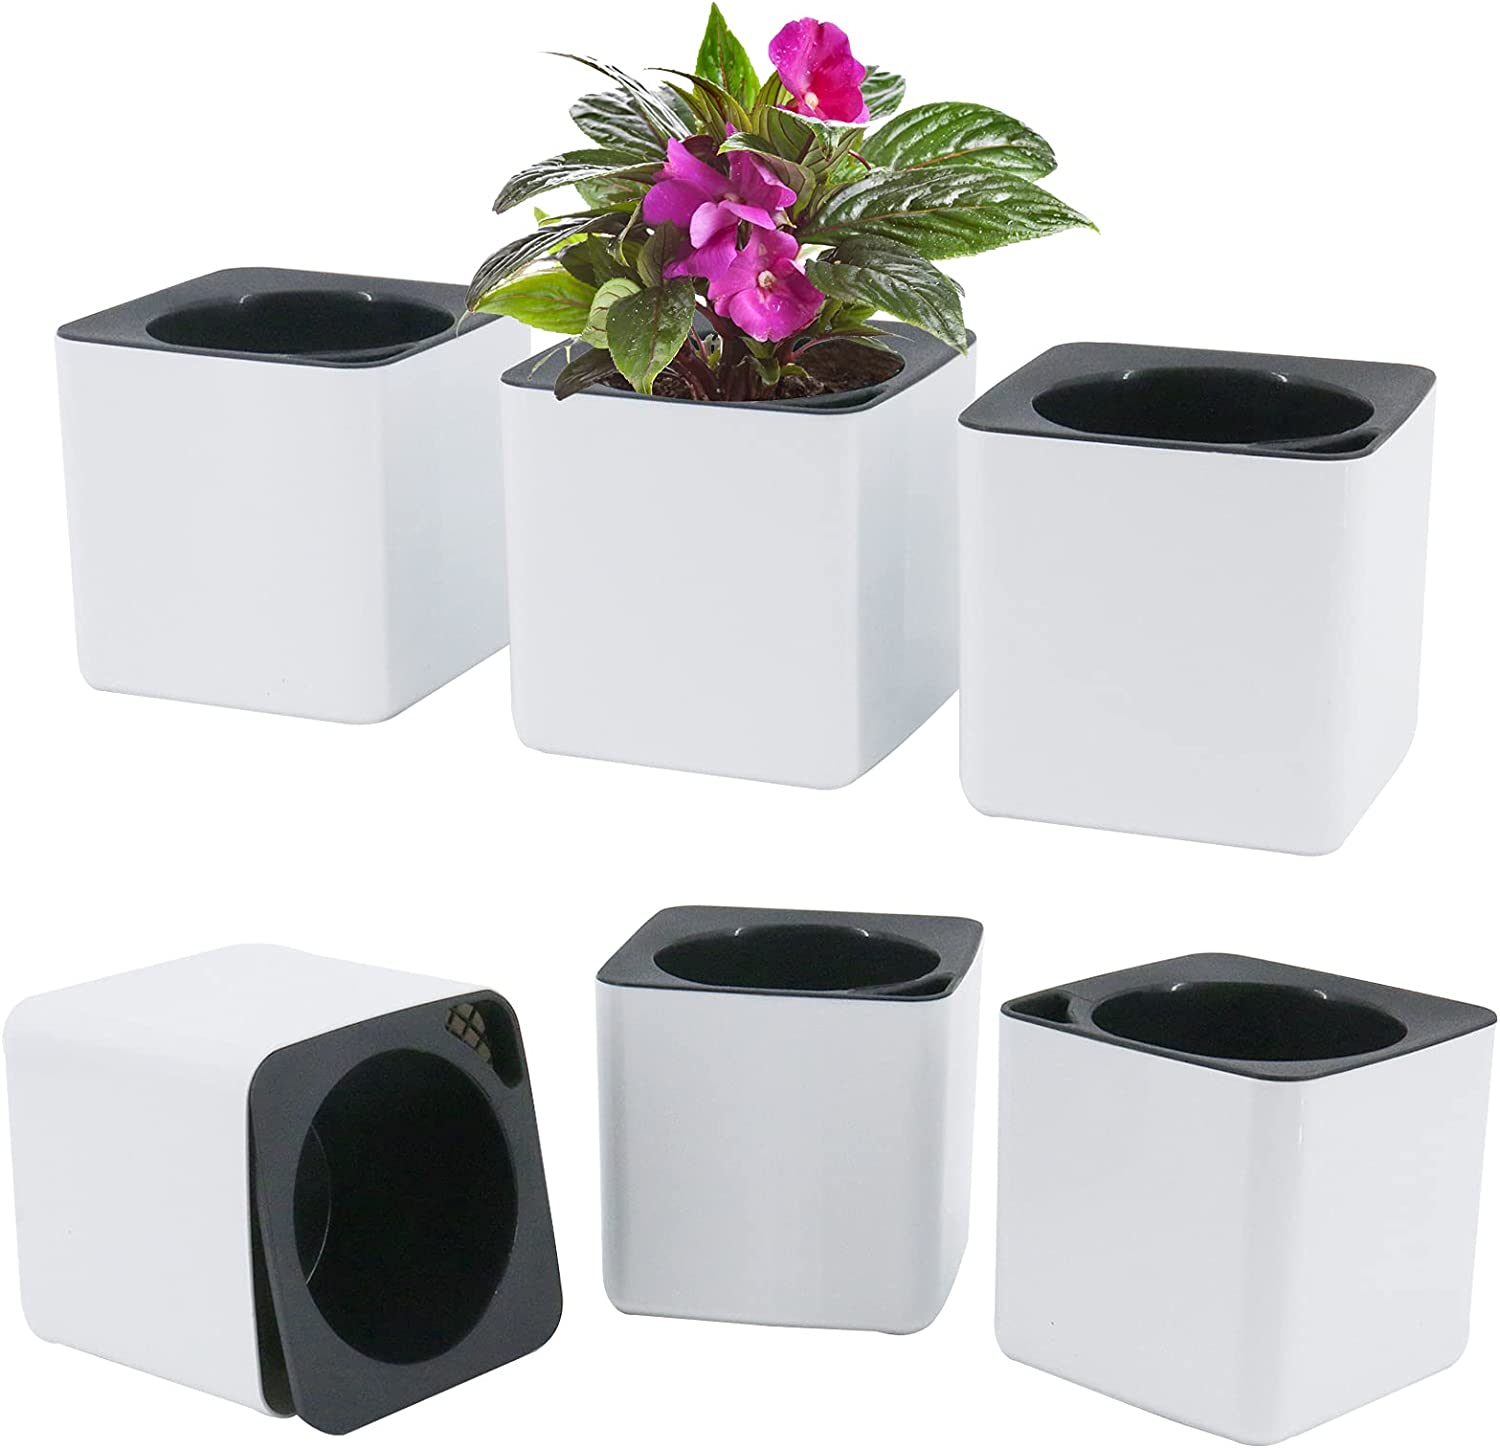 Finderomend 6 Pack 4 inch Self Watering Herb Pots Foolproof Indoor Home Garden Self Watering Plastic Planter with Inner Pot for Potting Smaller House Plants Herbs African Violets (Set of 6,White)